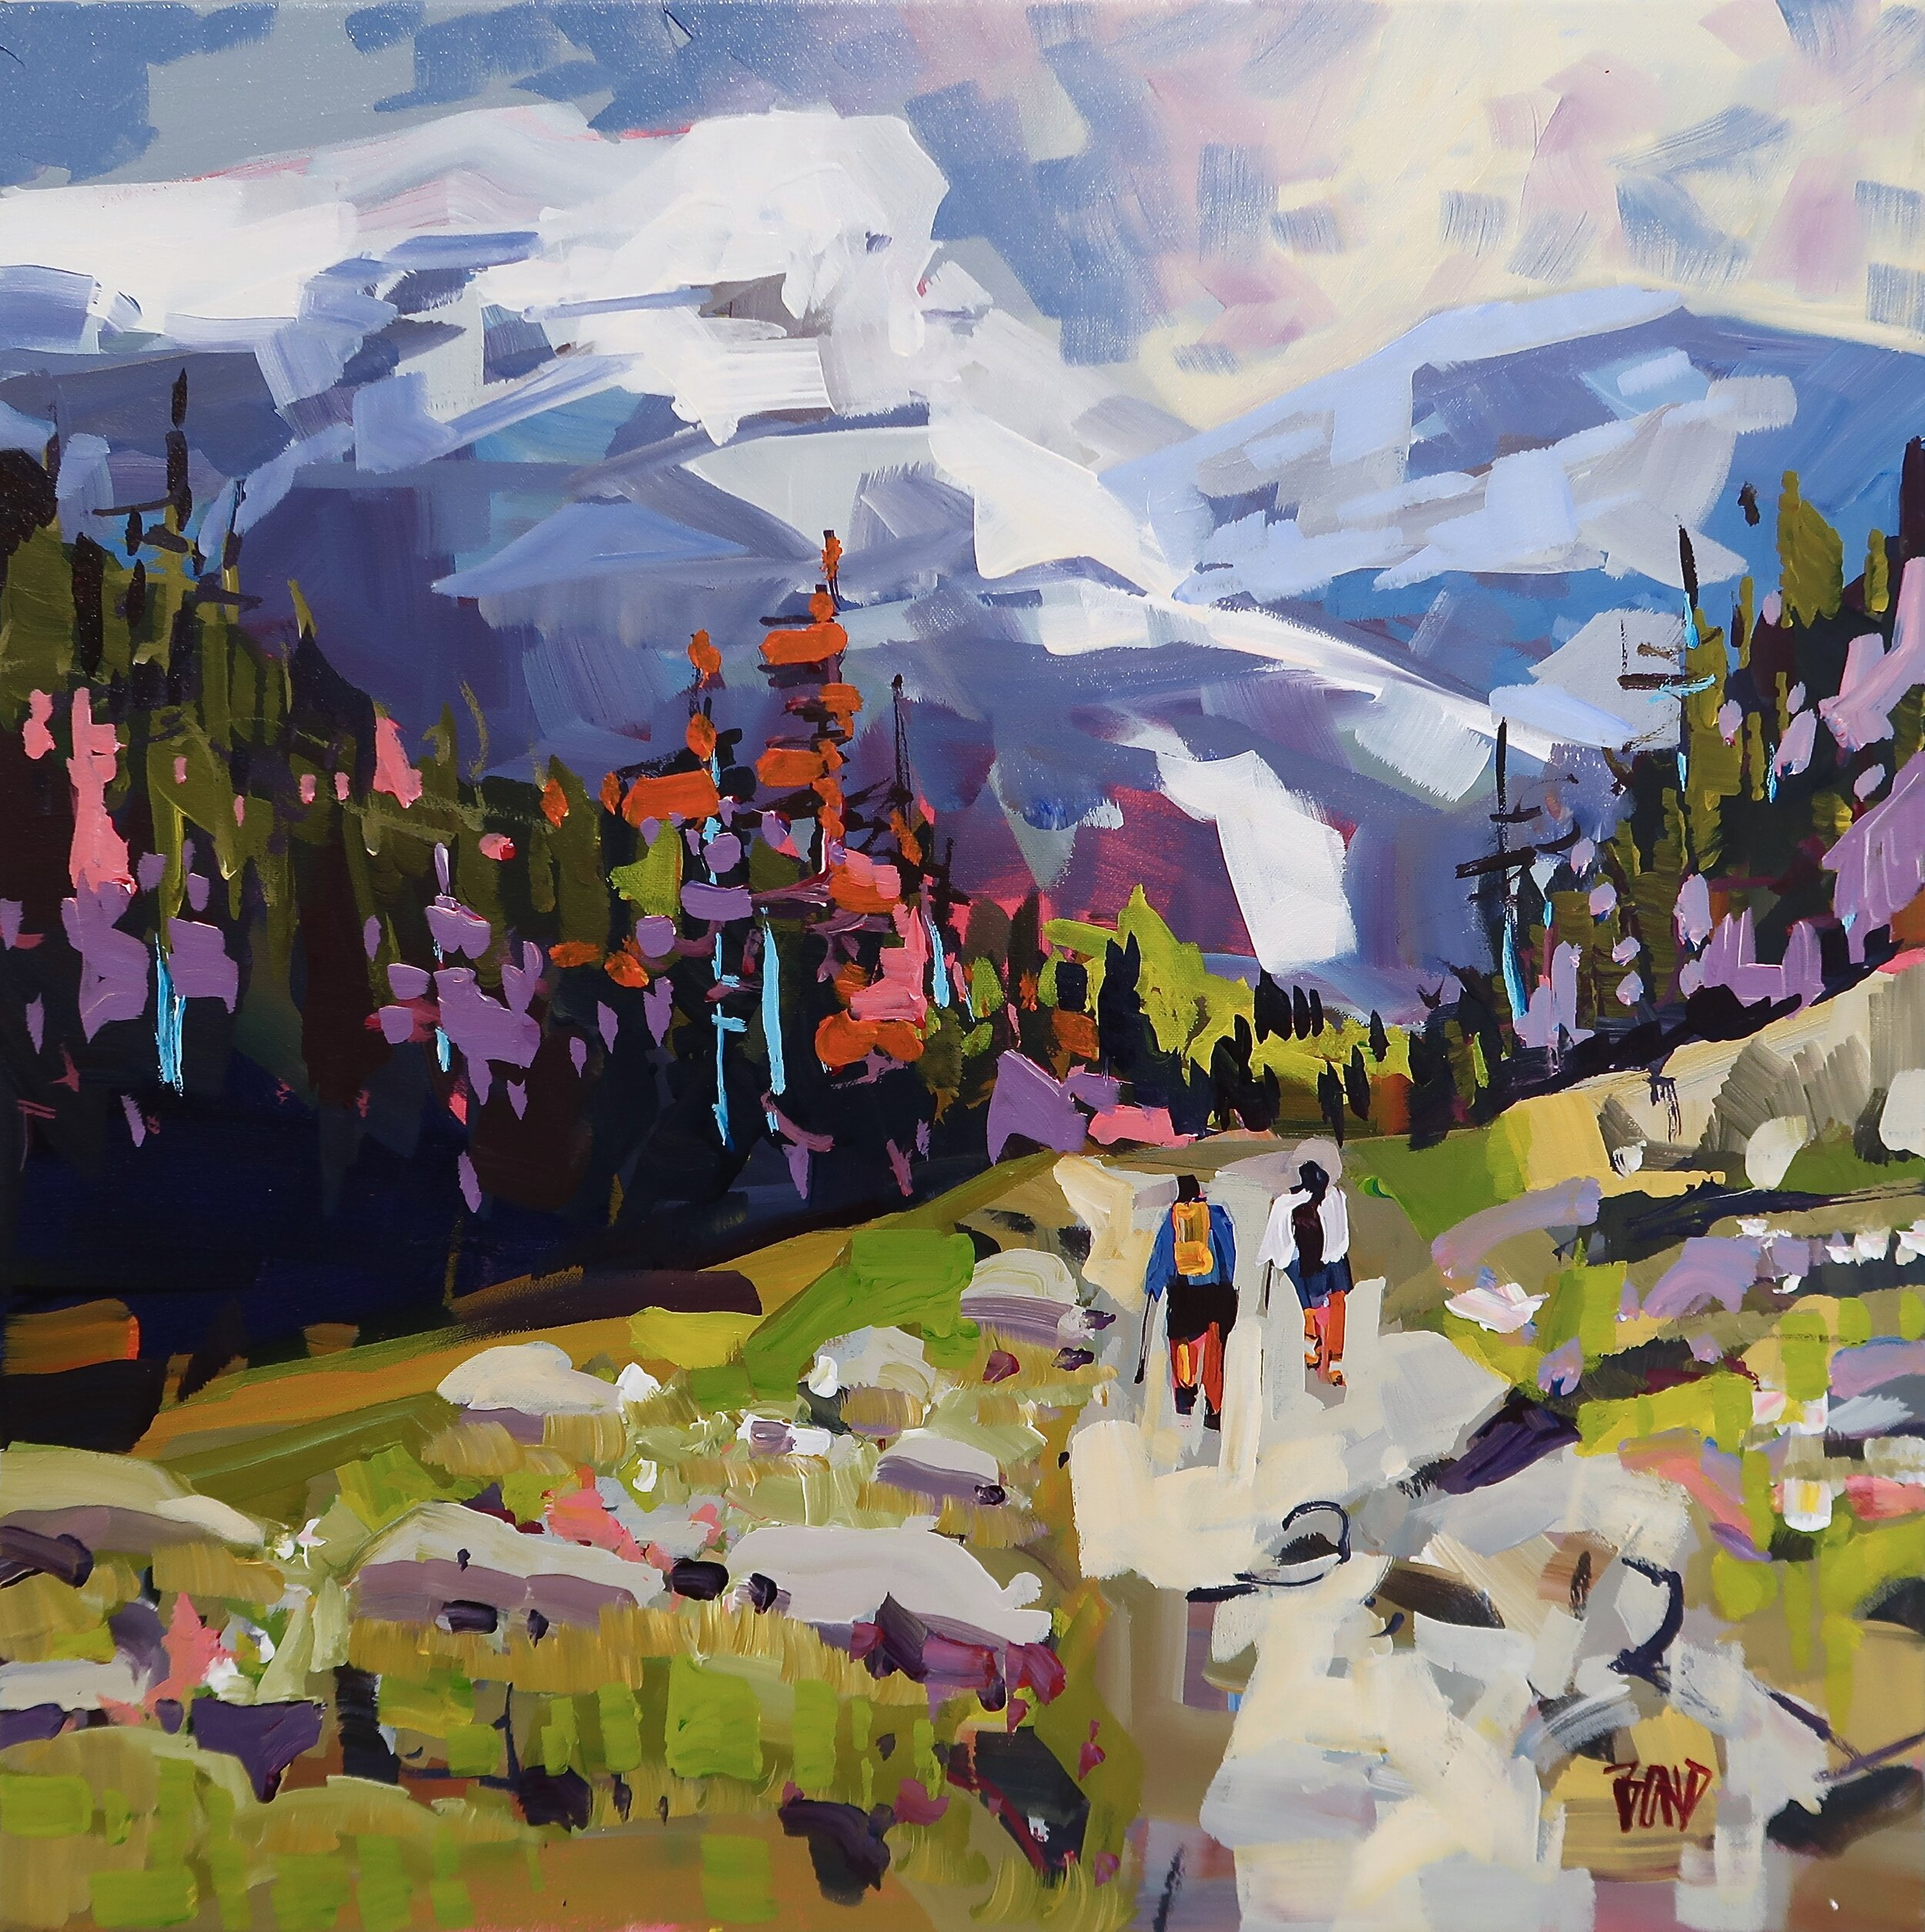 Hiking the Alpine 24 X 24 Inches Acrylic on Canvas SOLD